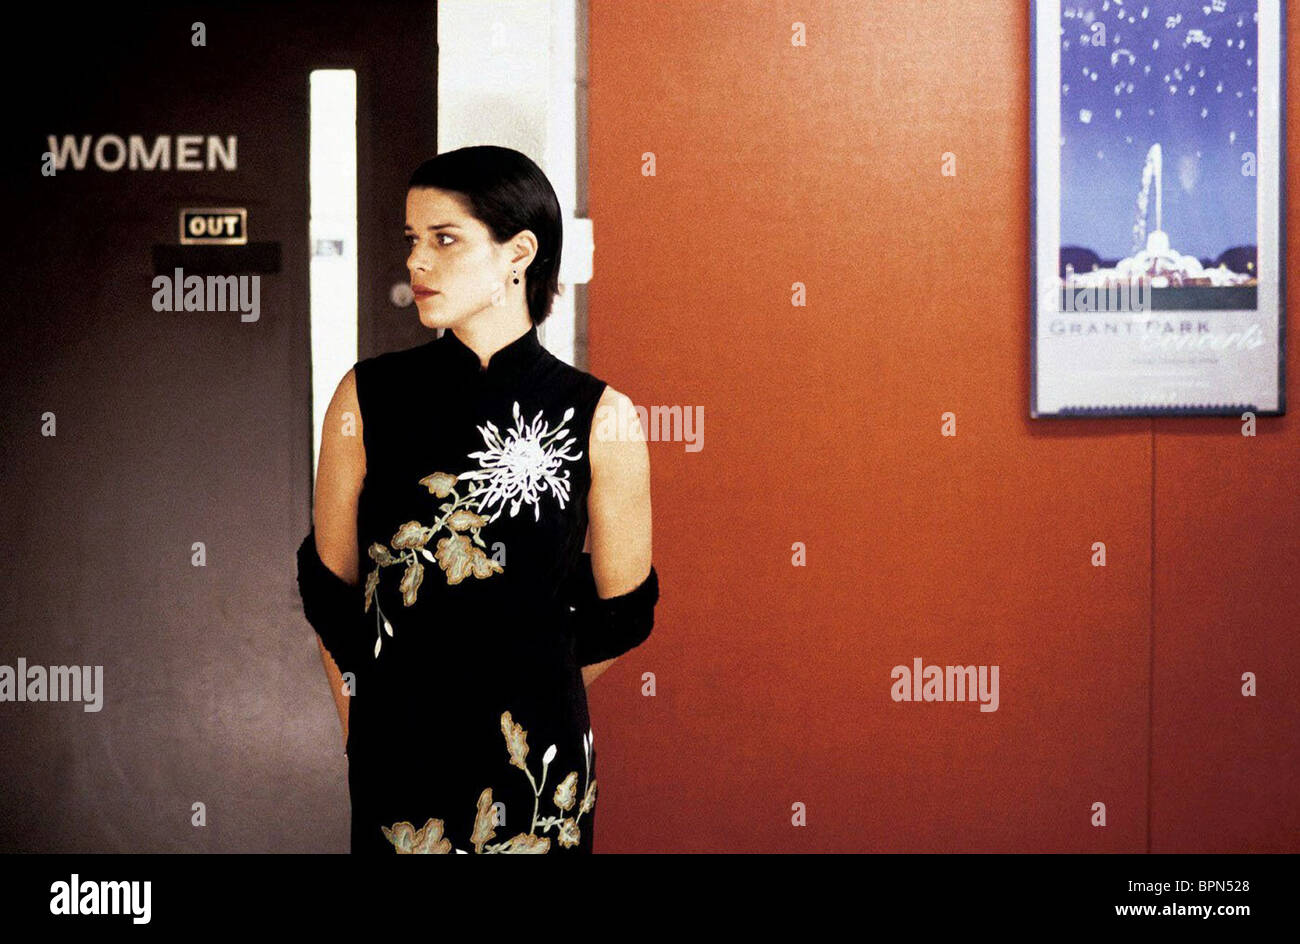 NEVE CAMPBELL THE COMPANY (2003) - Stock Image